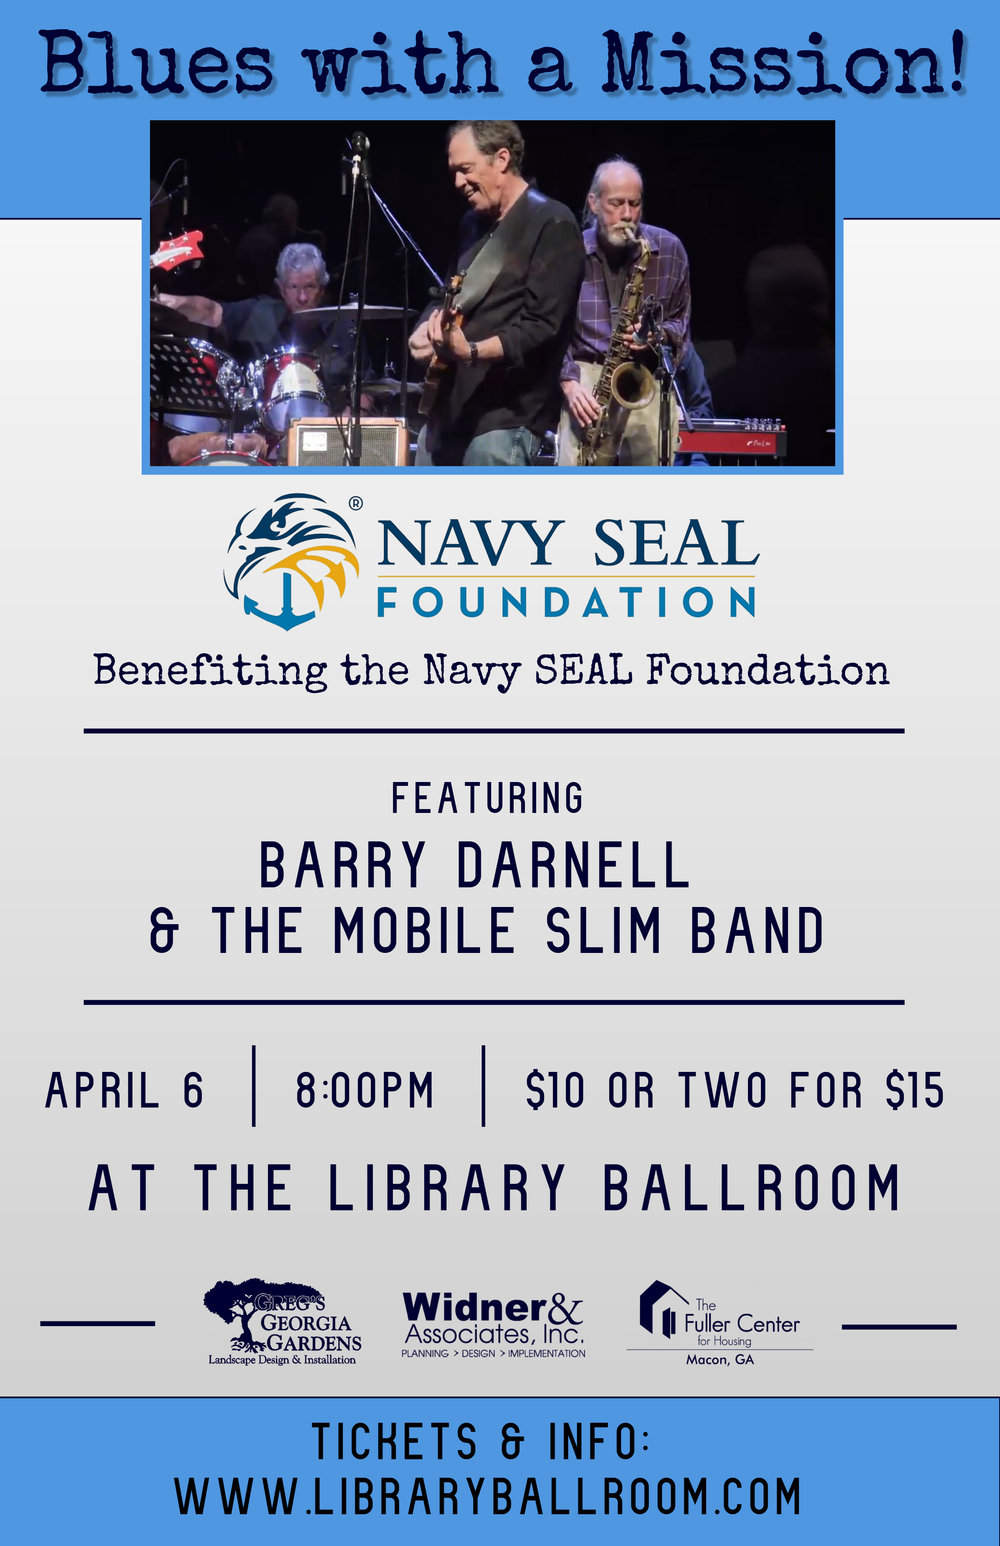 Blues with a mission - Barry Darnell - Library Ballroom - 04.06.19.jpg